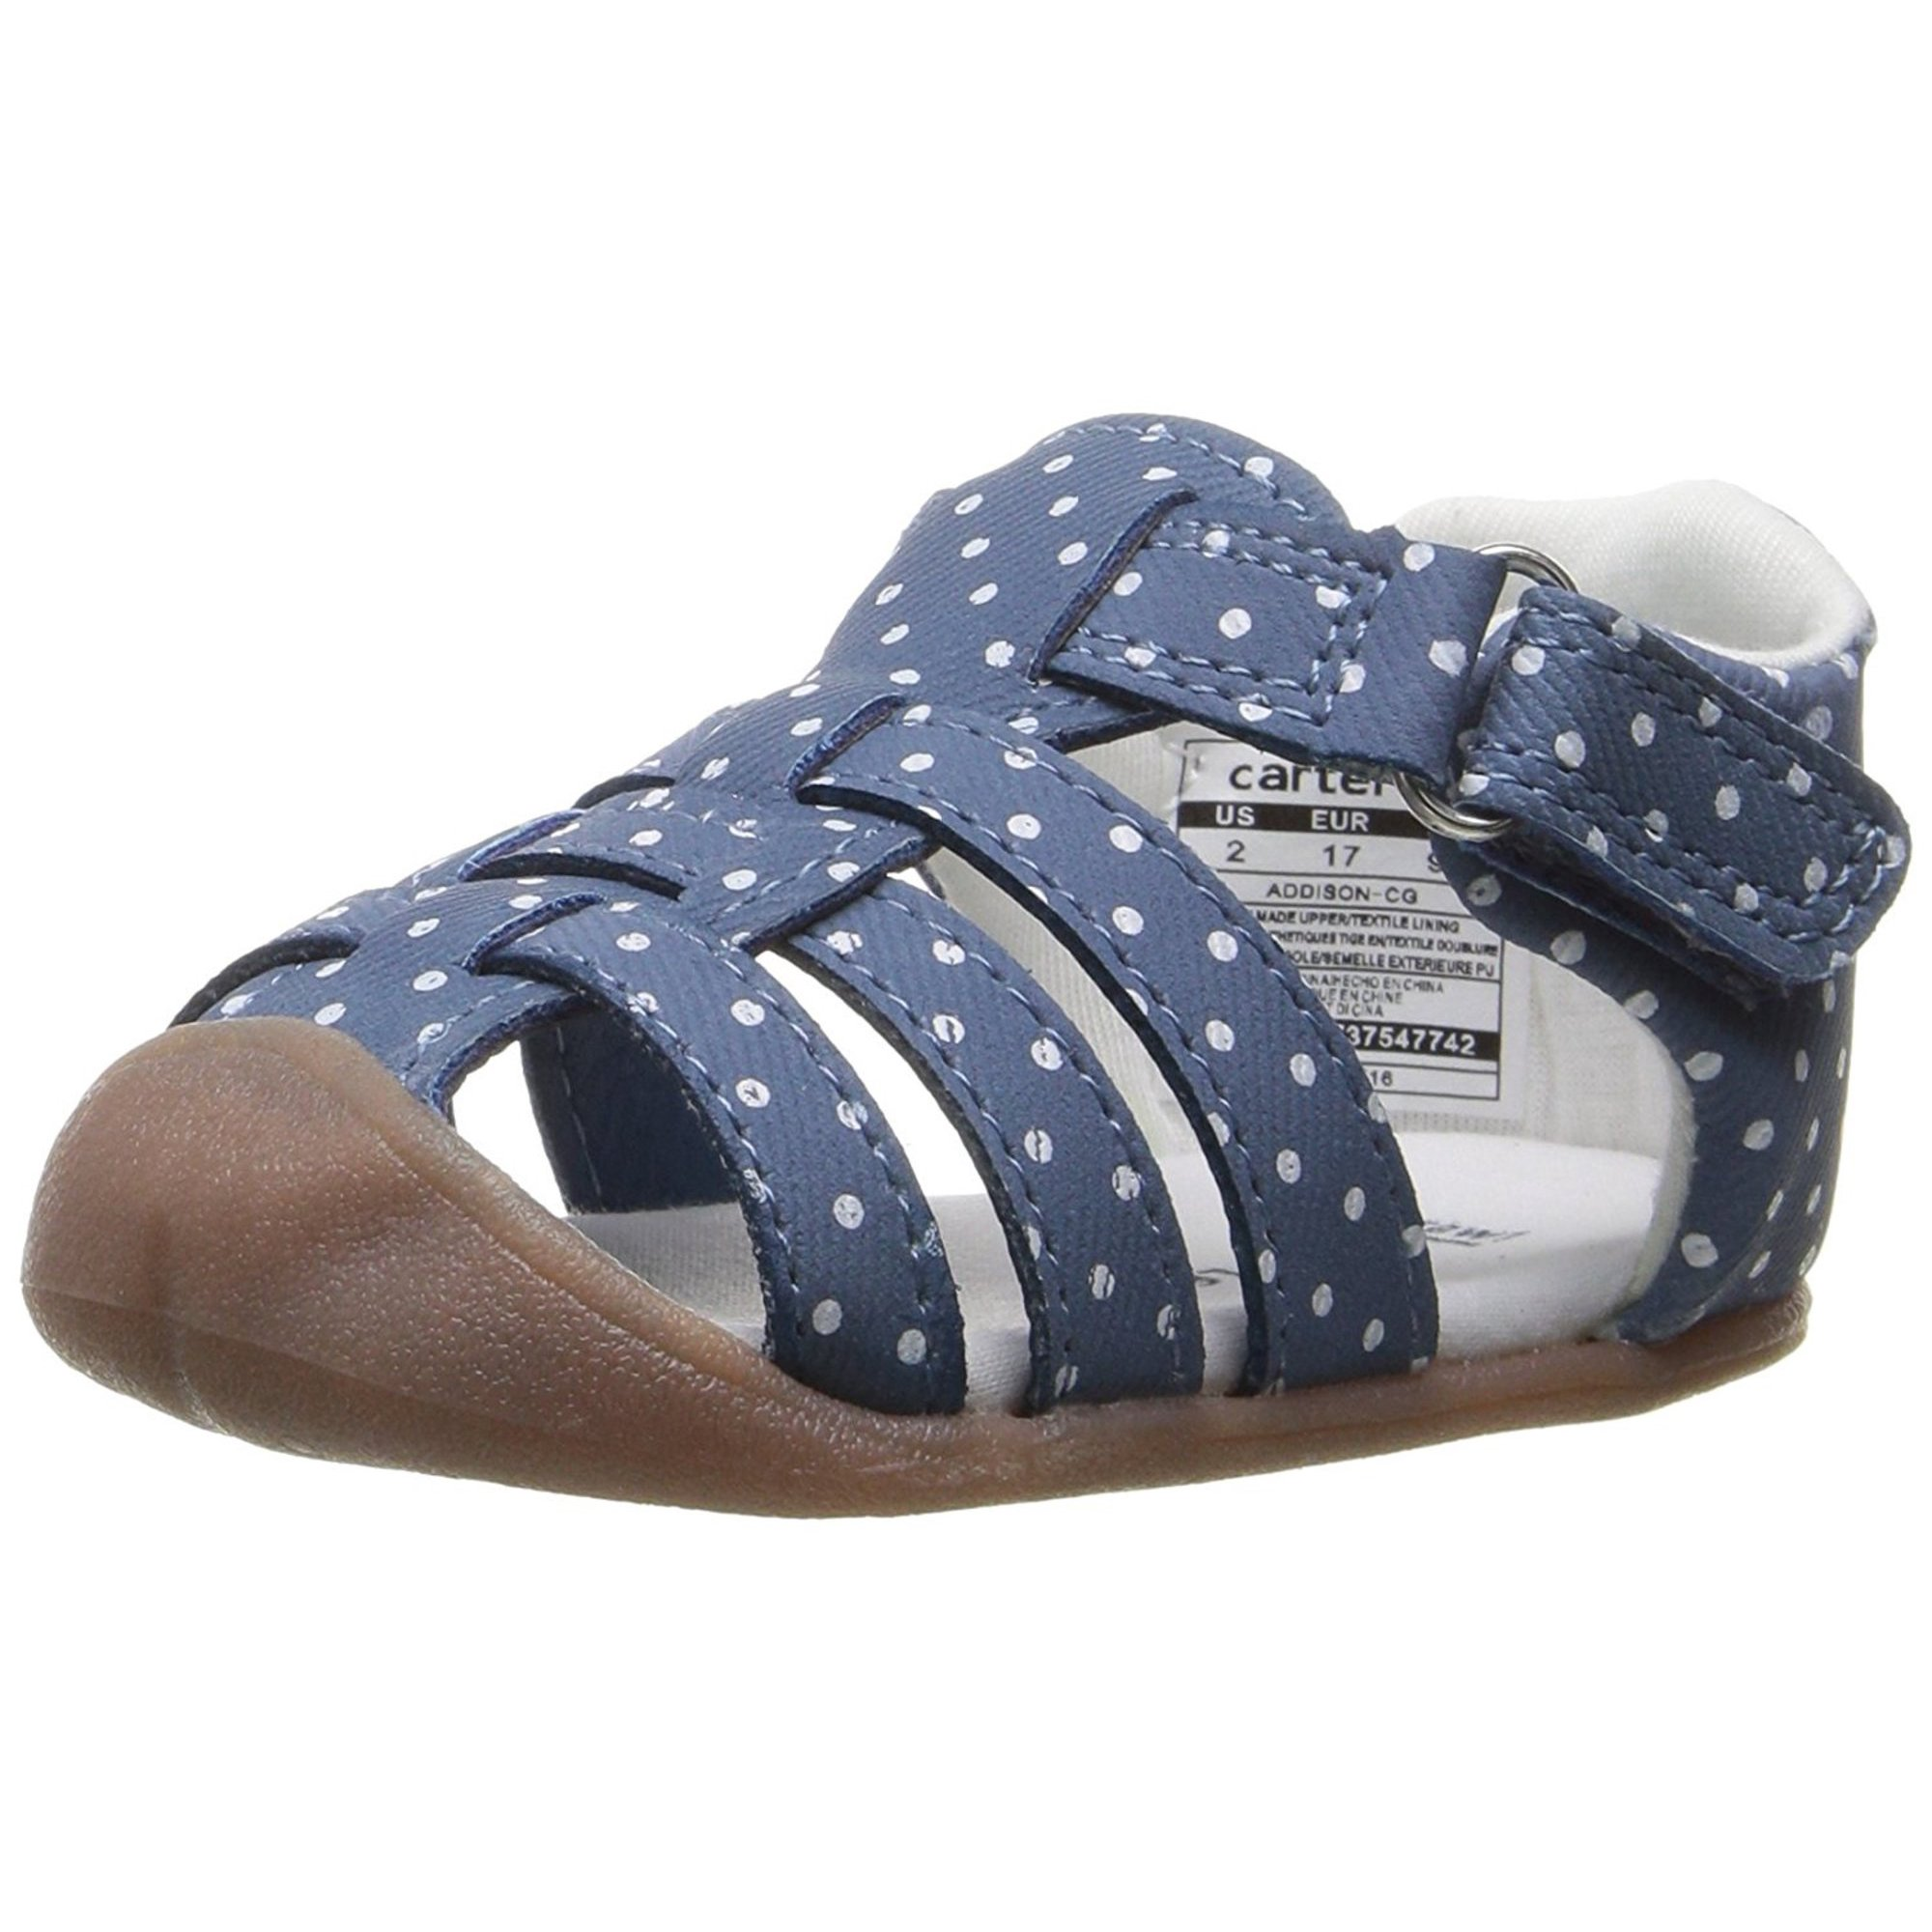 3ce80dd3b Carter s Every Step Girl s and Boy s Standing Shoe